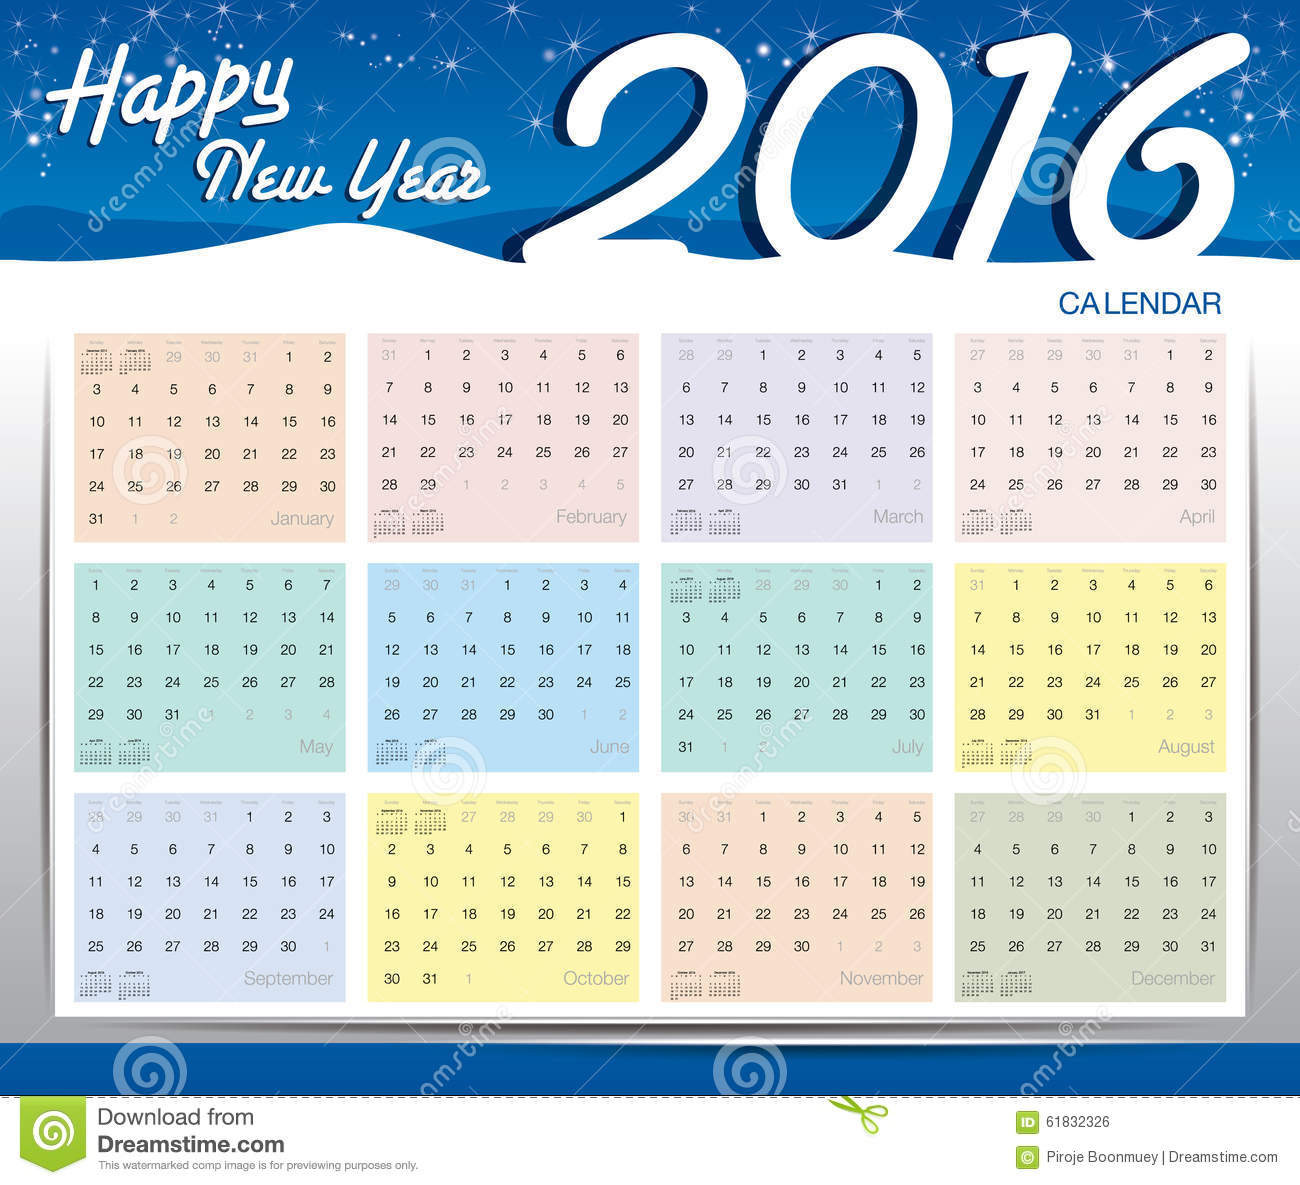 Happy New Year Calendar : Happy new year calendar stock vector image